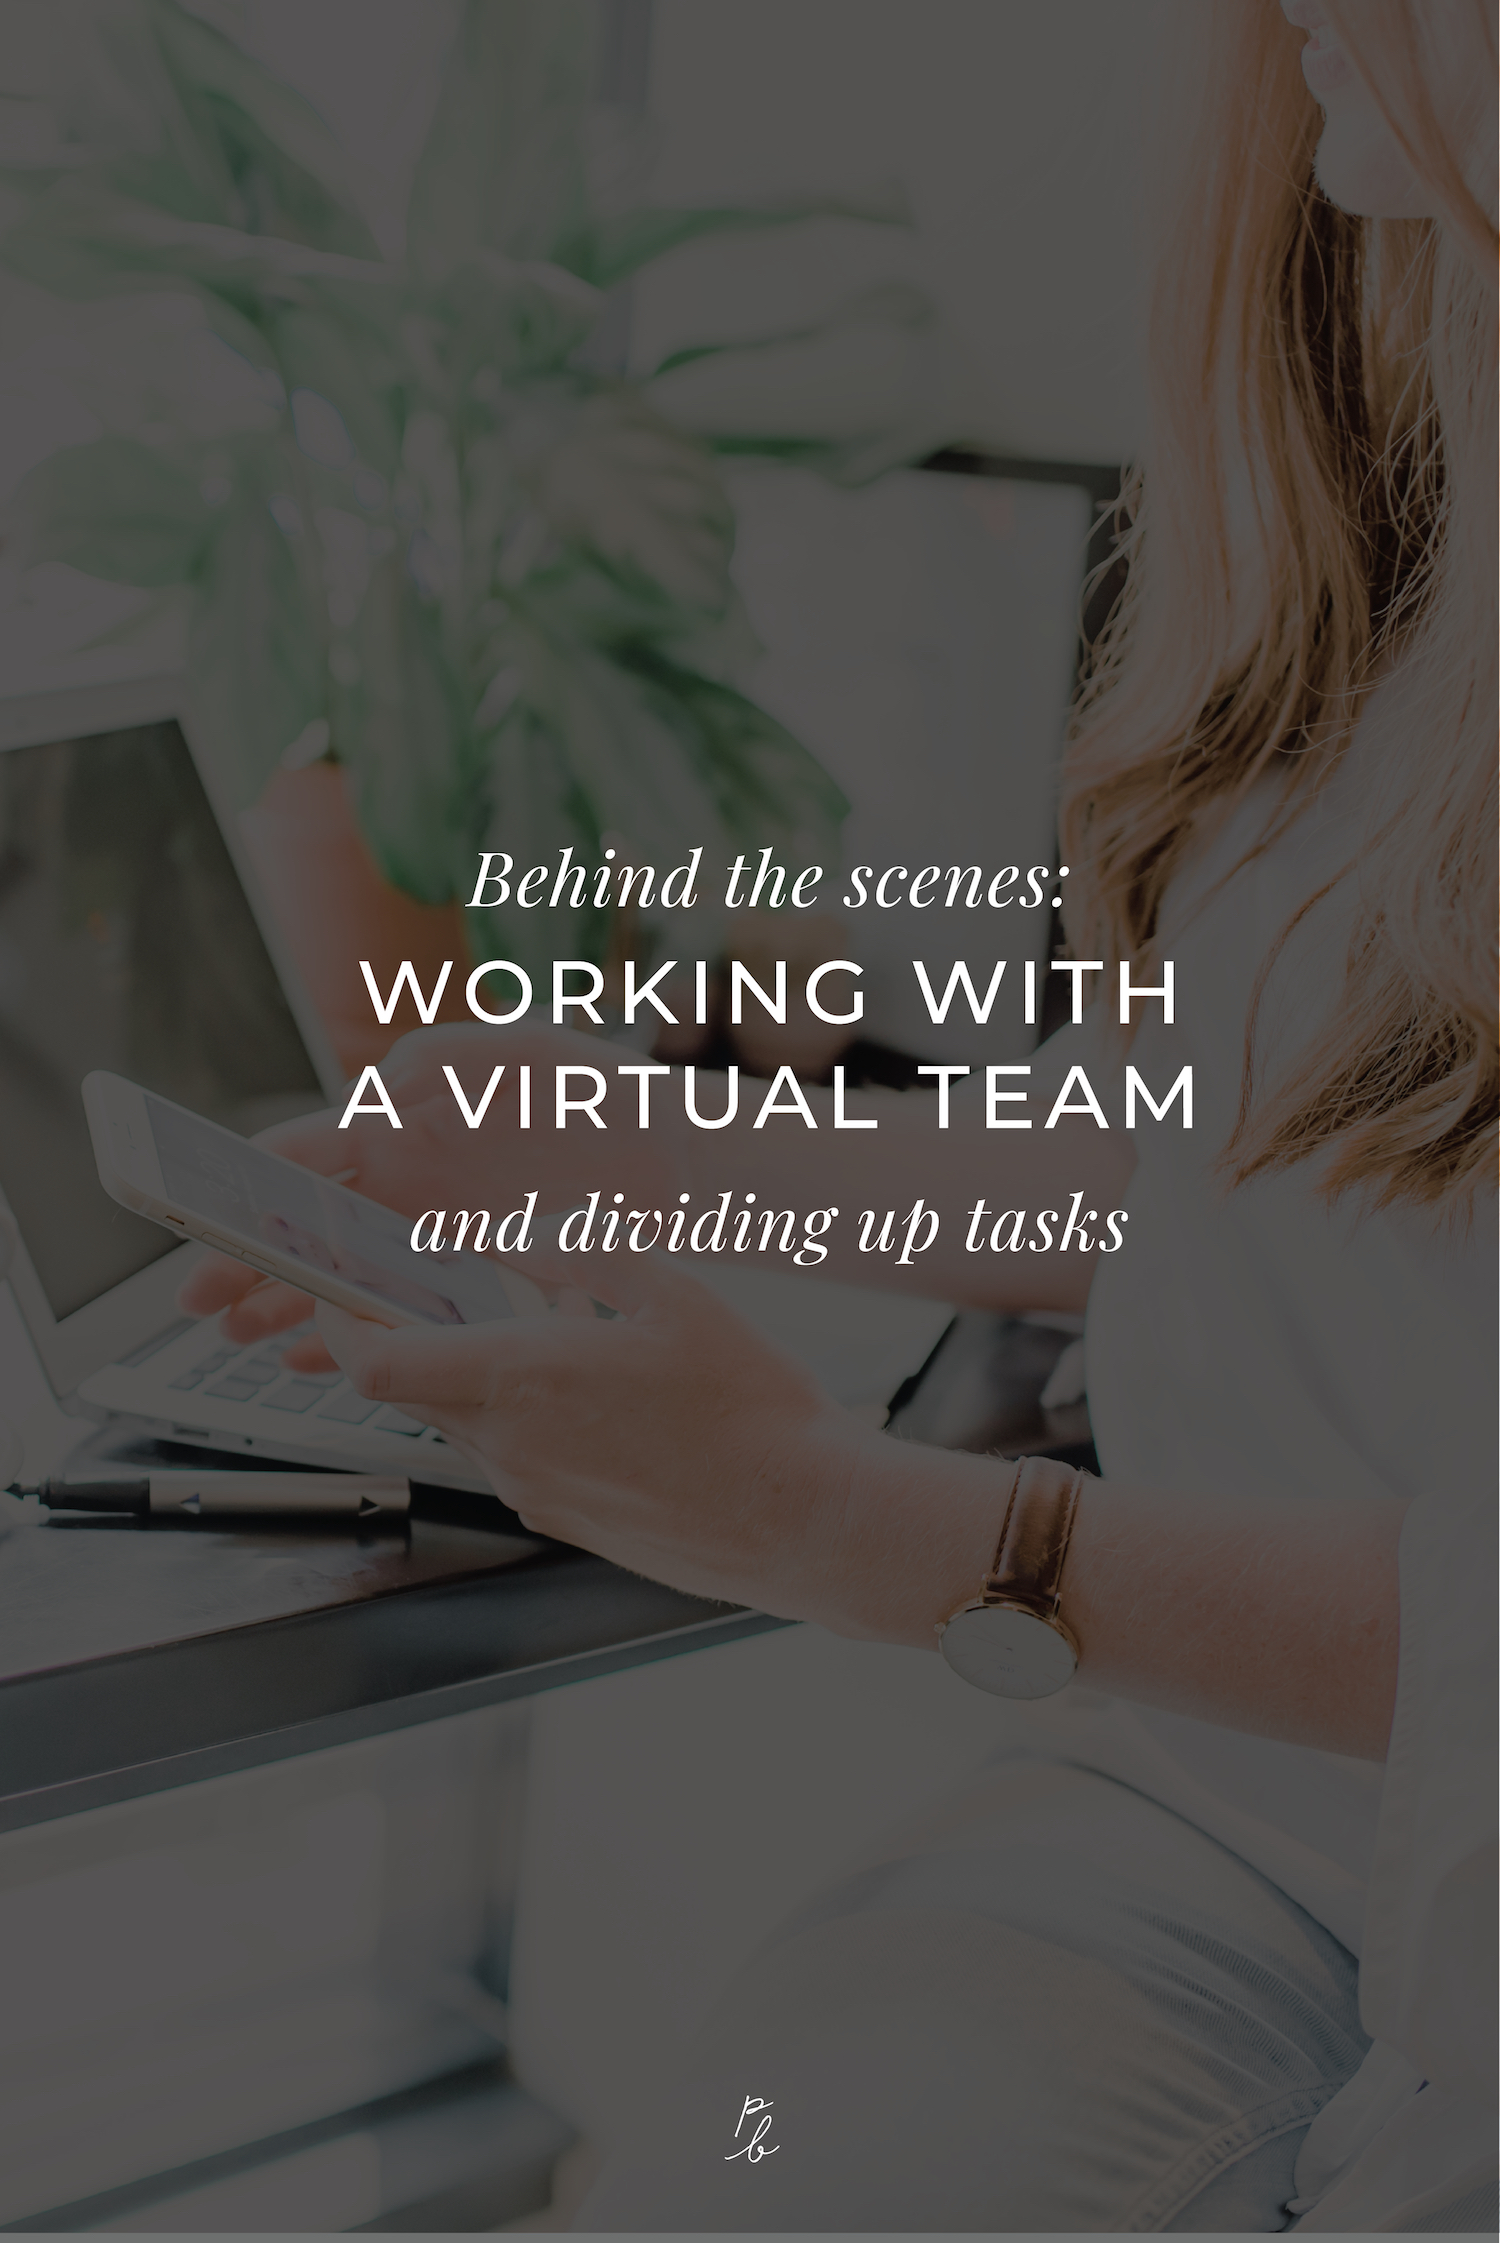 Behind the scenes- Working with a virtual team and dividing up tasks-02.jpeg